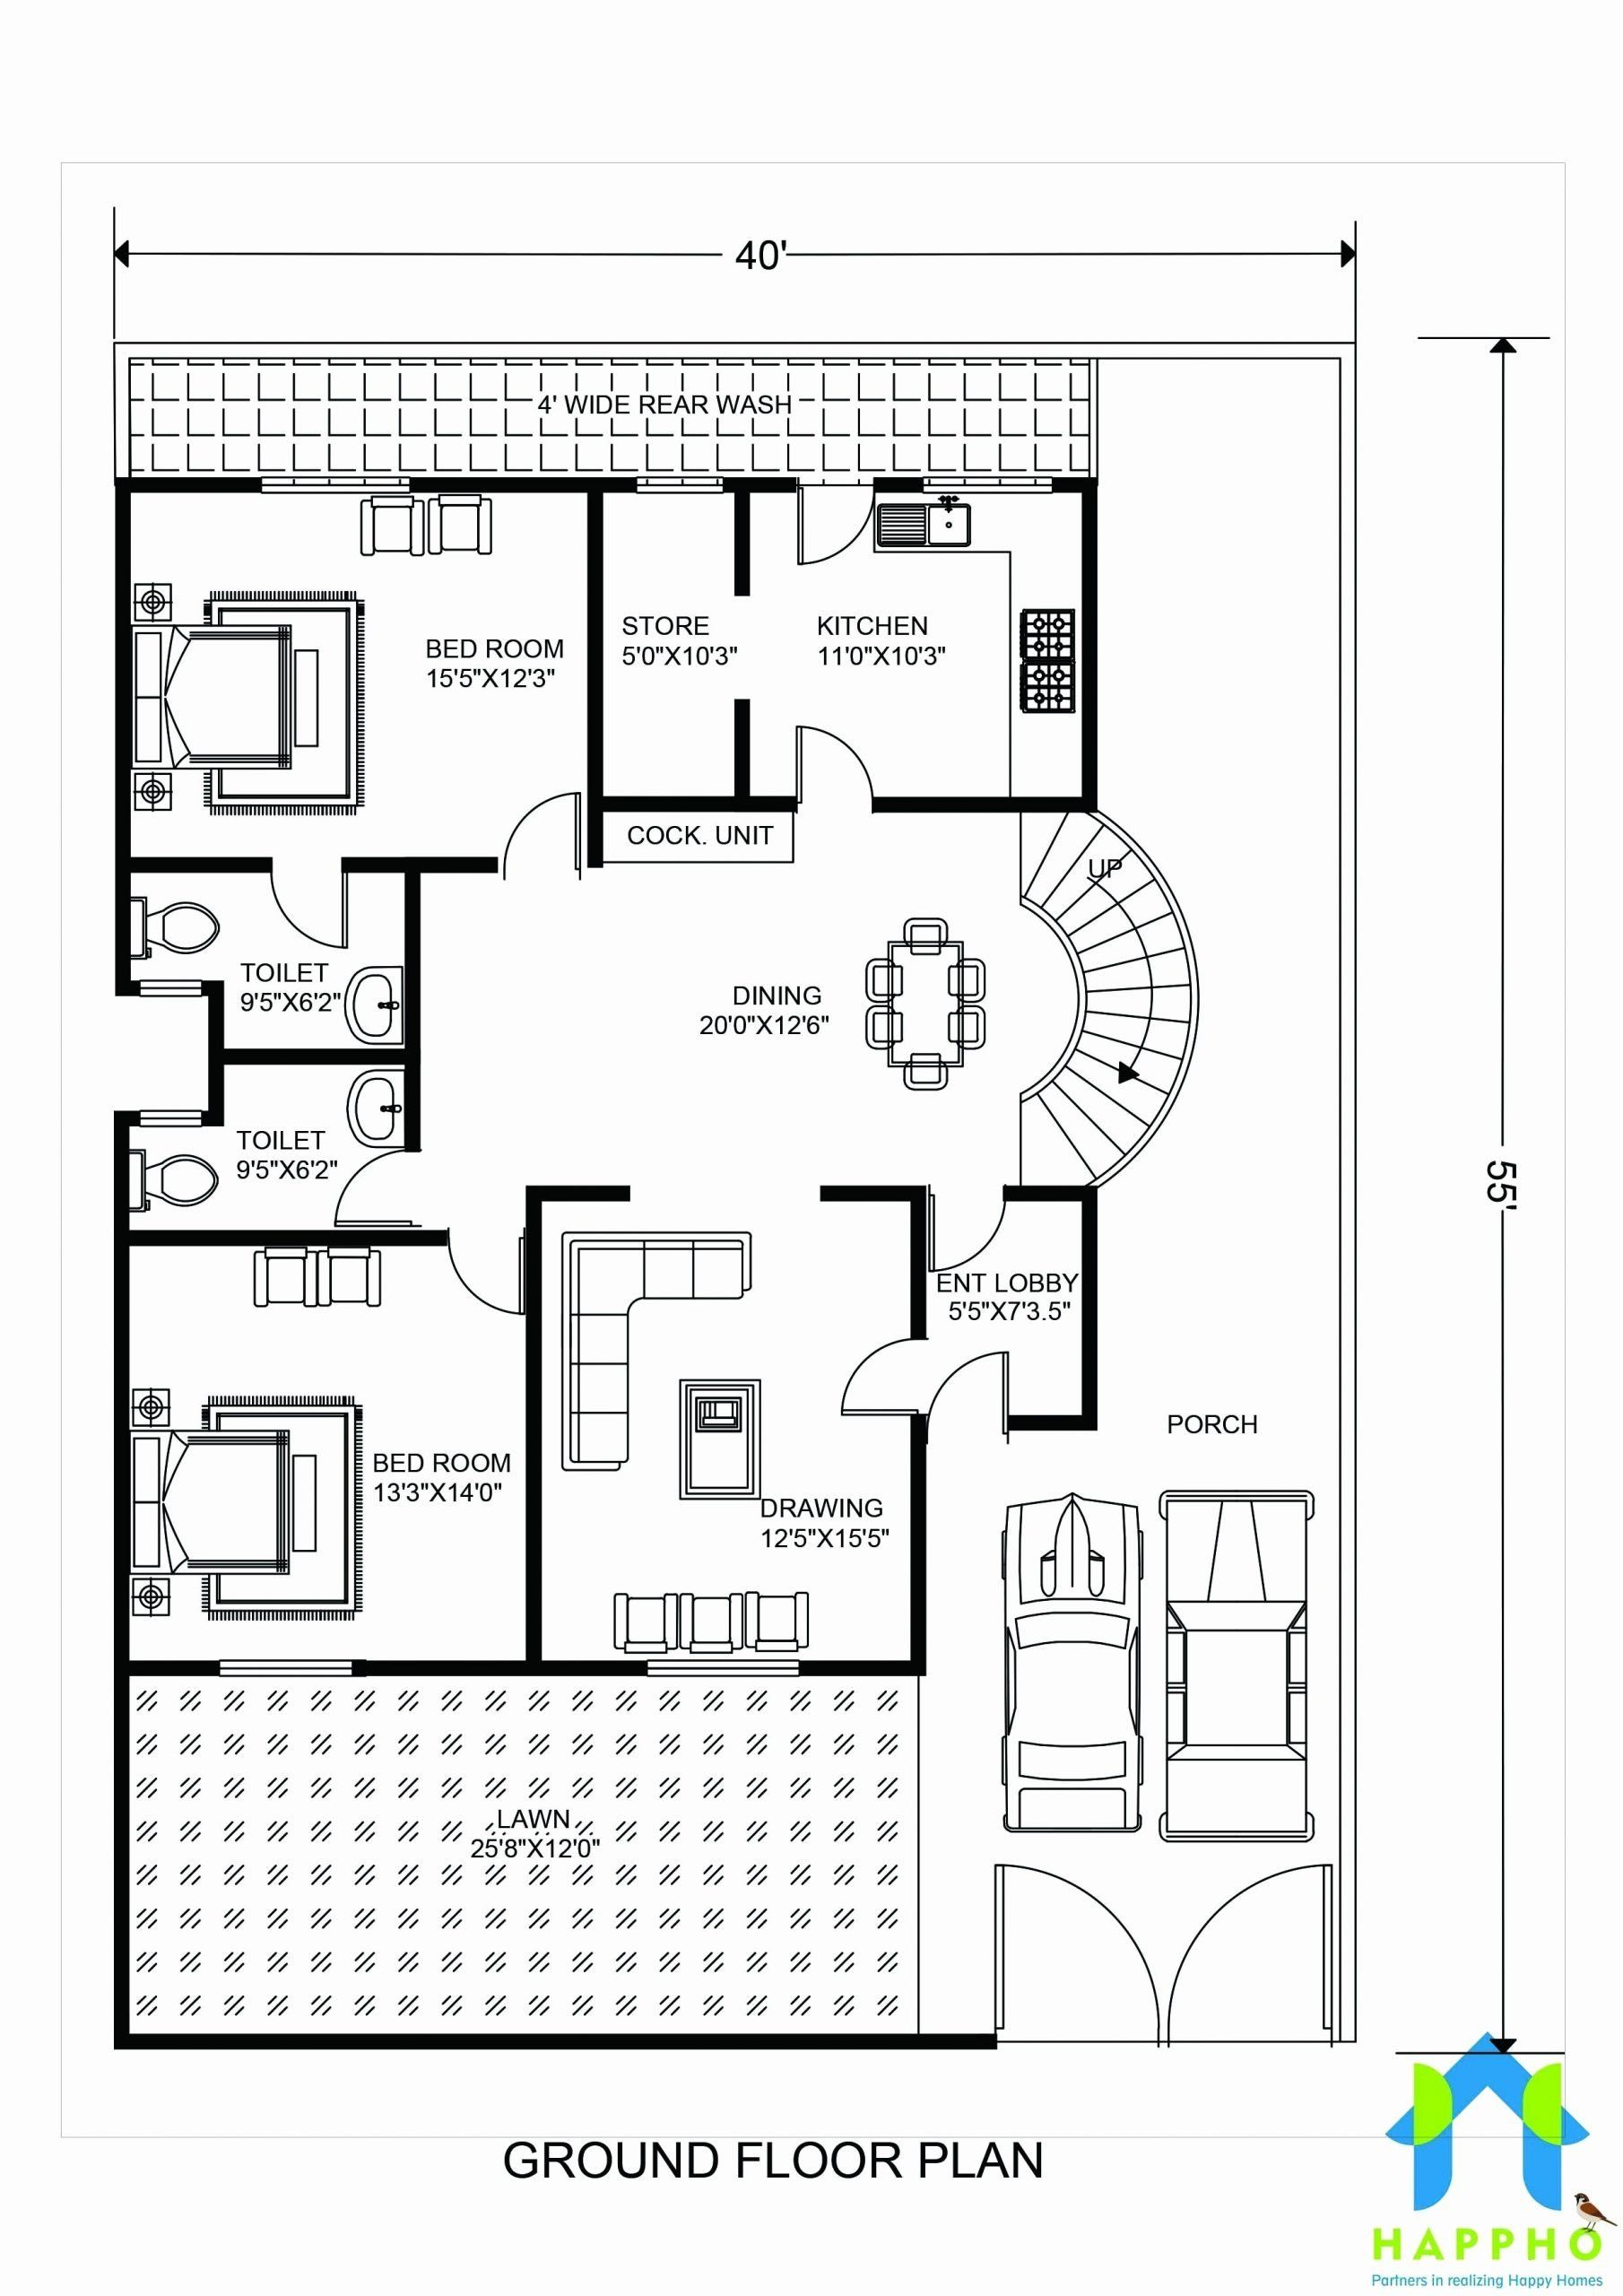 40 X 40 House Plans Inspirational Floor Plan For 40 X 55 Feet Plot House Plans One Story Open Floor House Plans 2200 Sq Ft House Plans